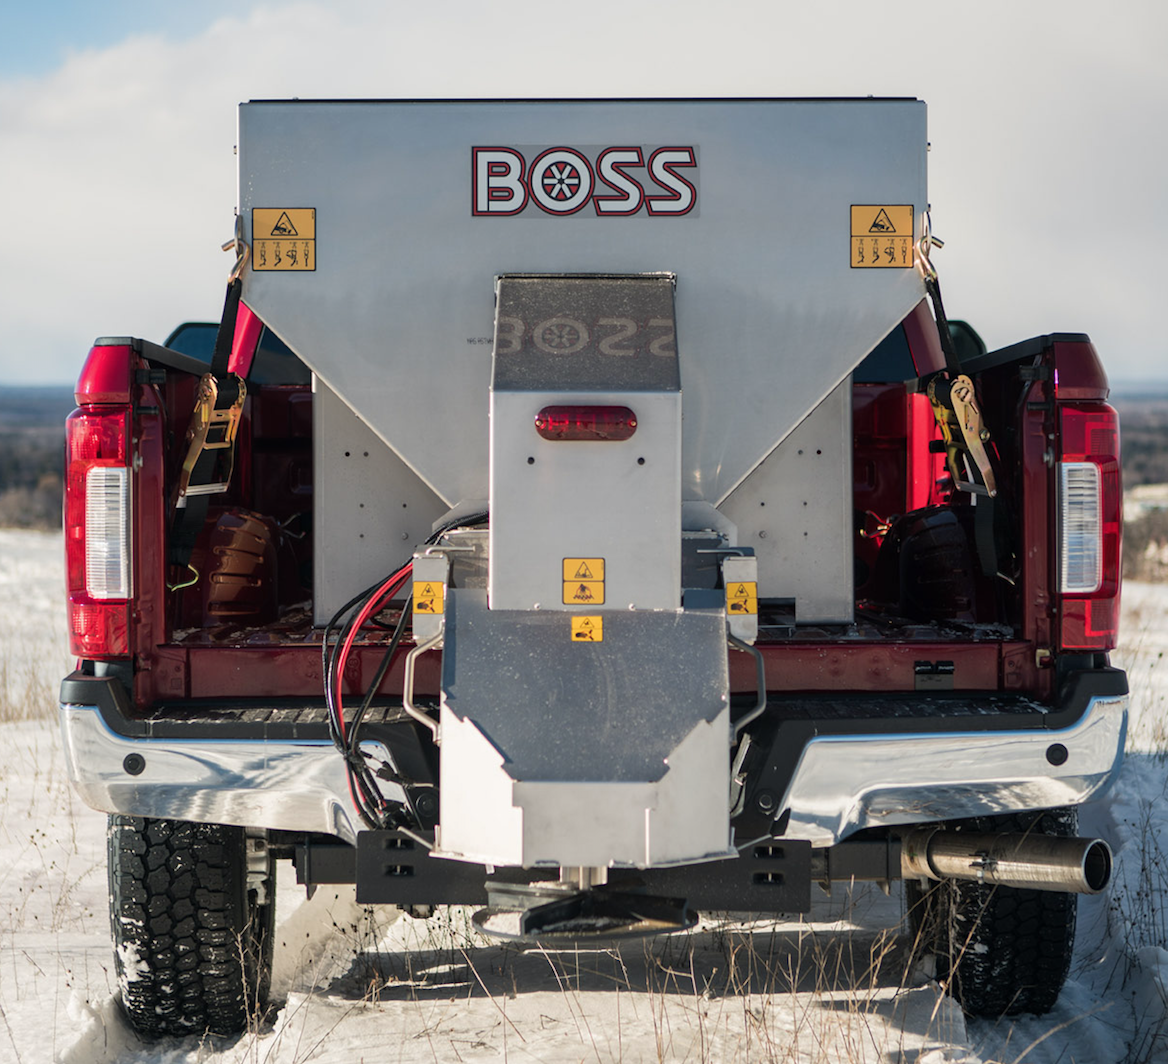 BOSS Stainless Steel FORGE Spreader